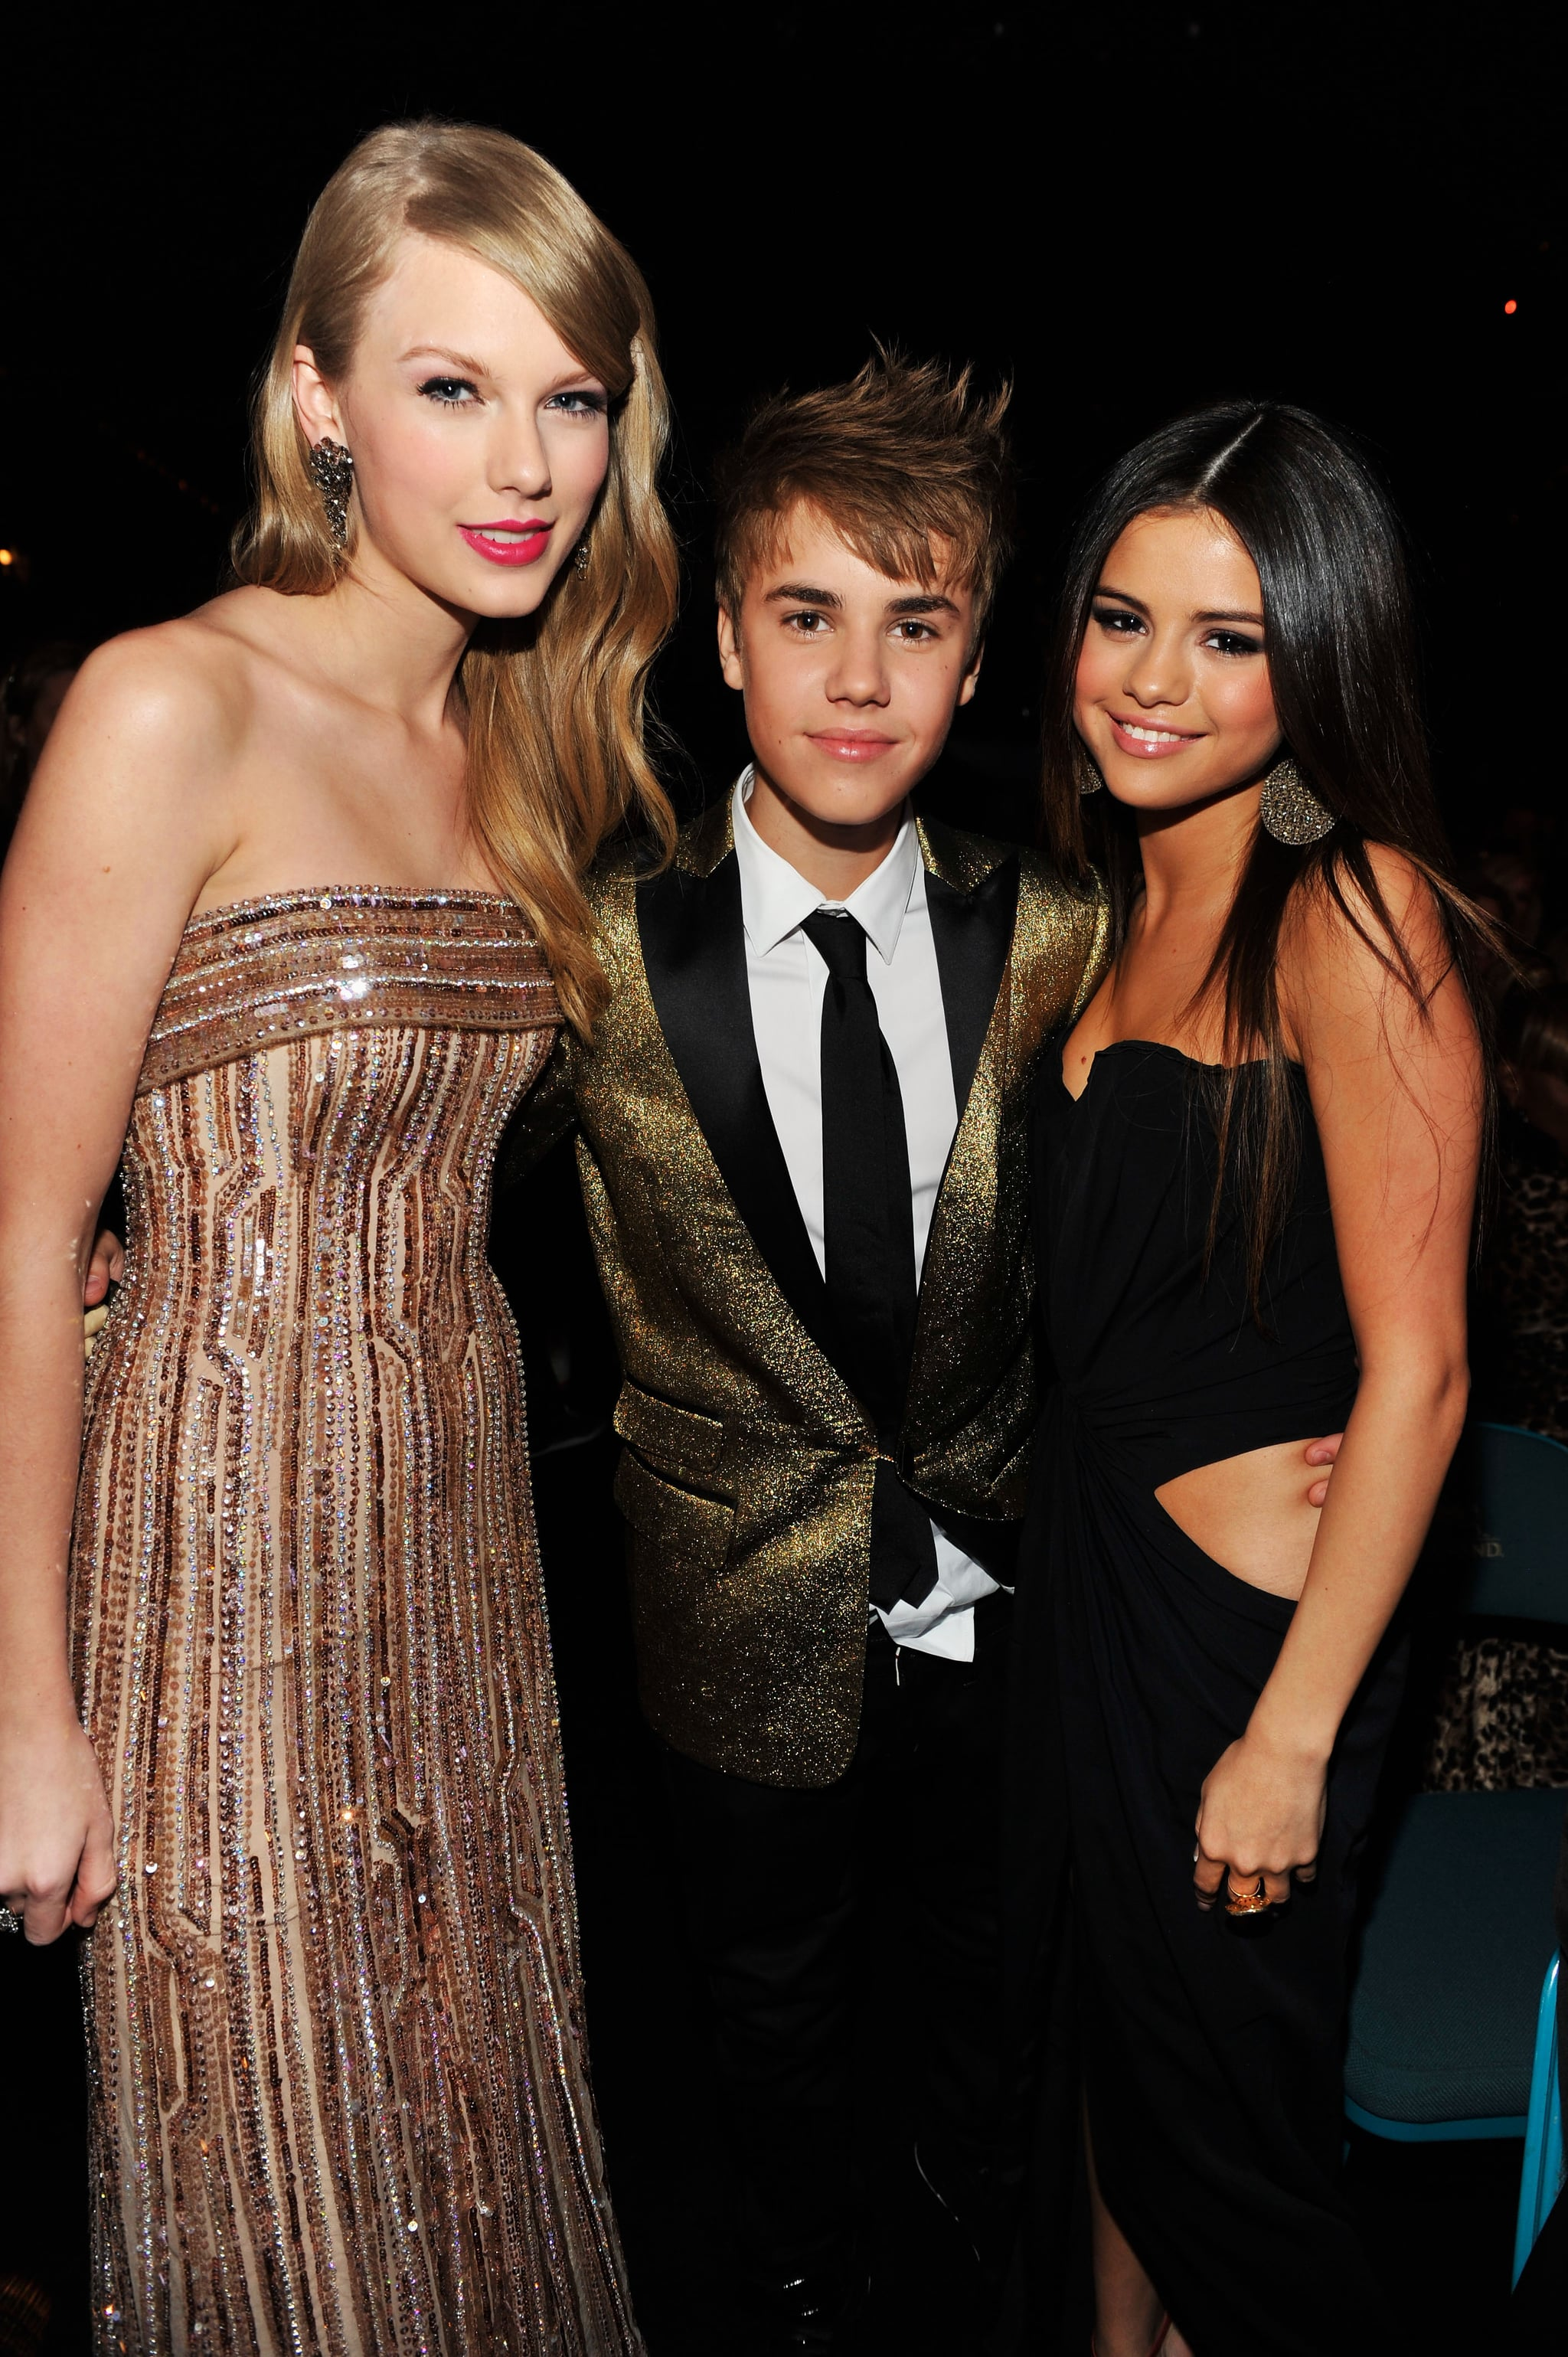 Taylor Swift, Justin Bieber, and Selena Gomez made a picture-perfect group in December 2011.